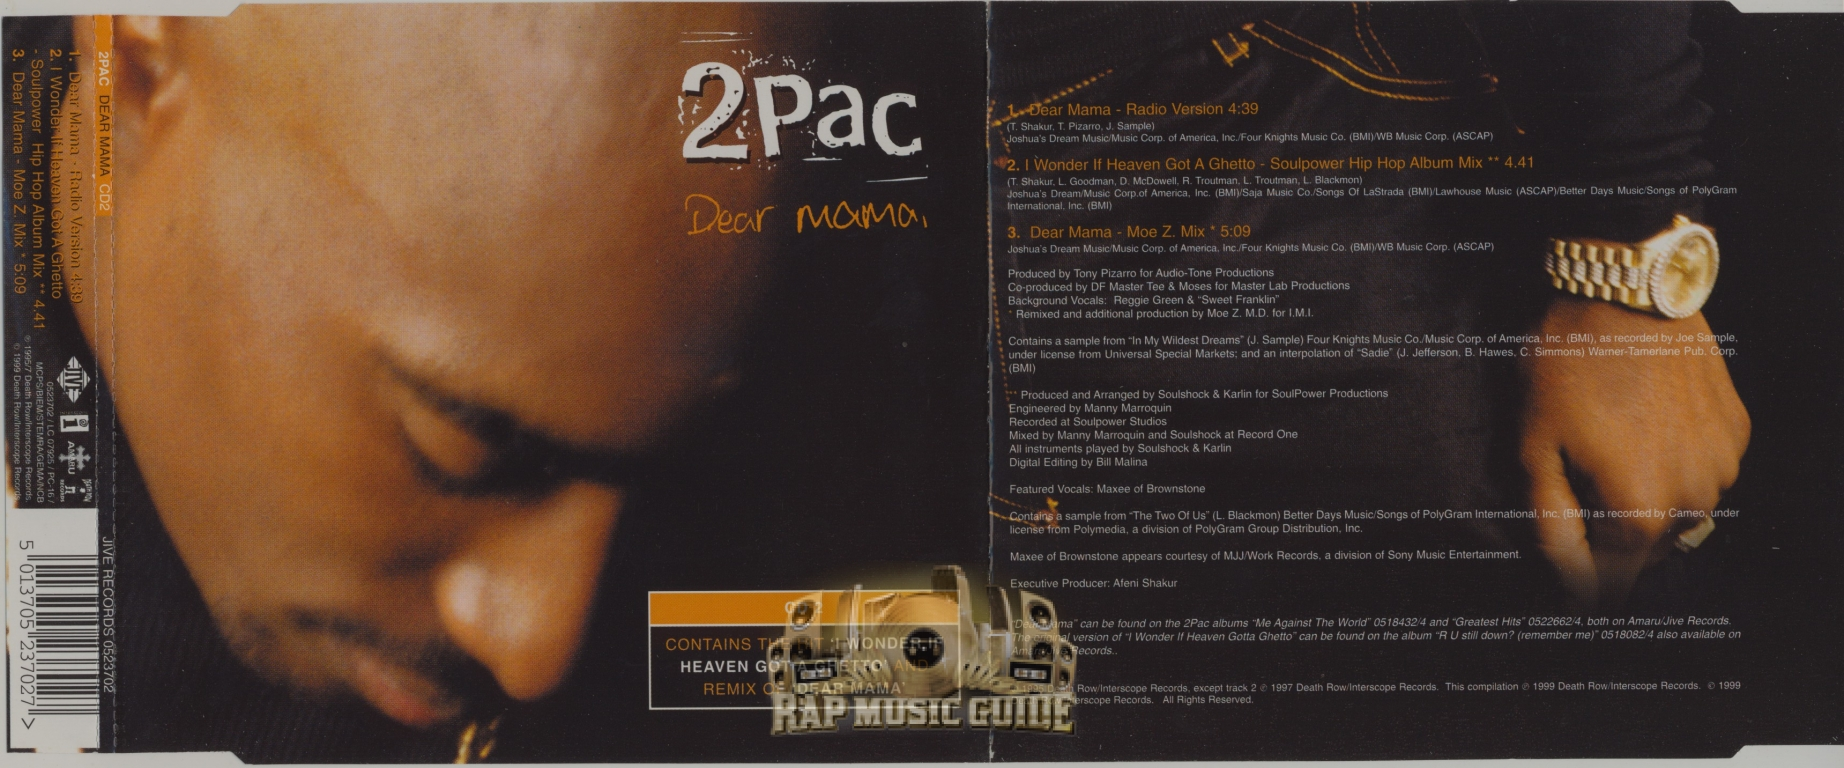 Download 2pac changes